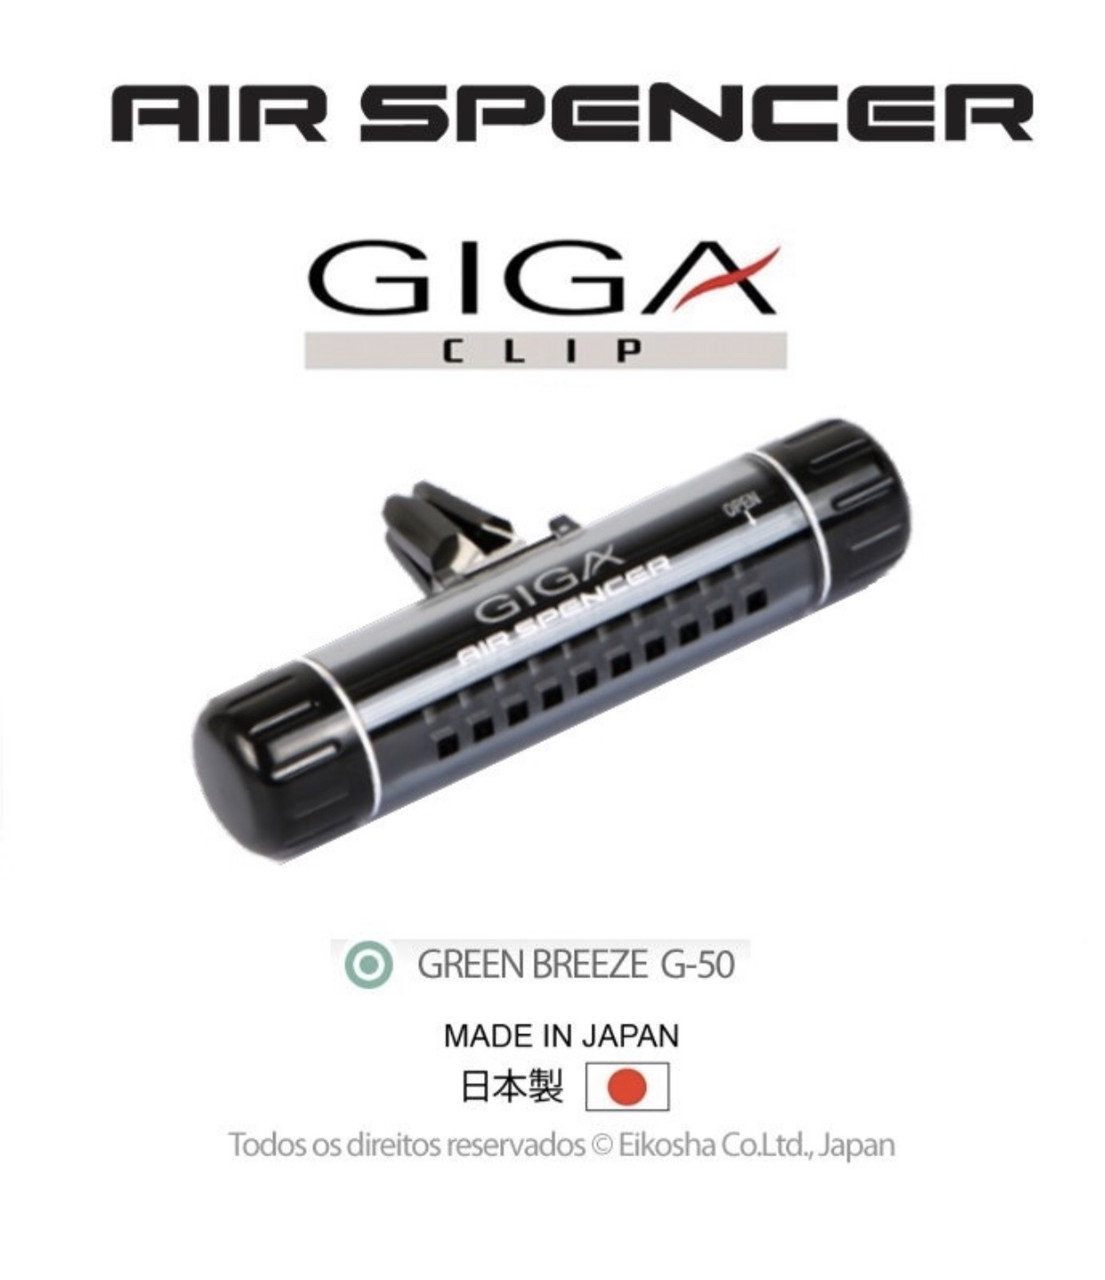 EIKOSHA AIR SPENCER GIGA CLIP Green Breeze/Зелёный бриз